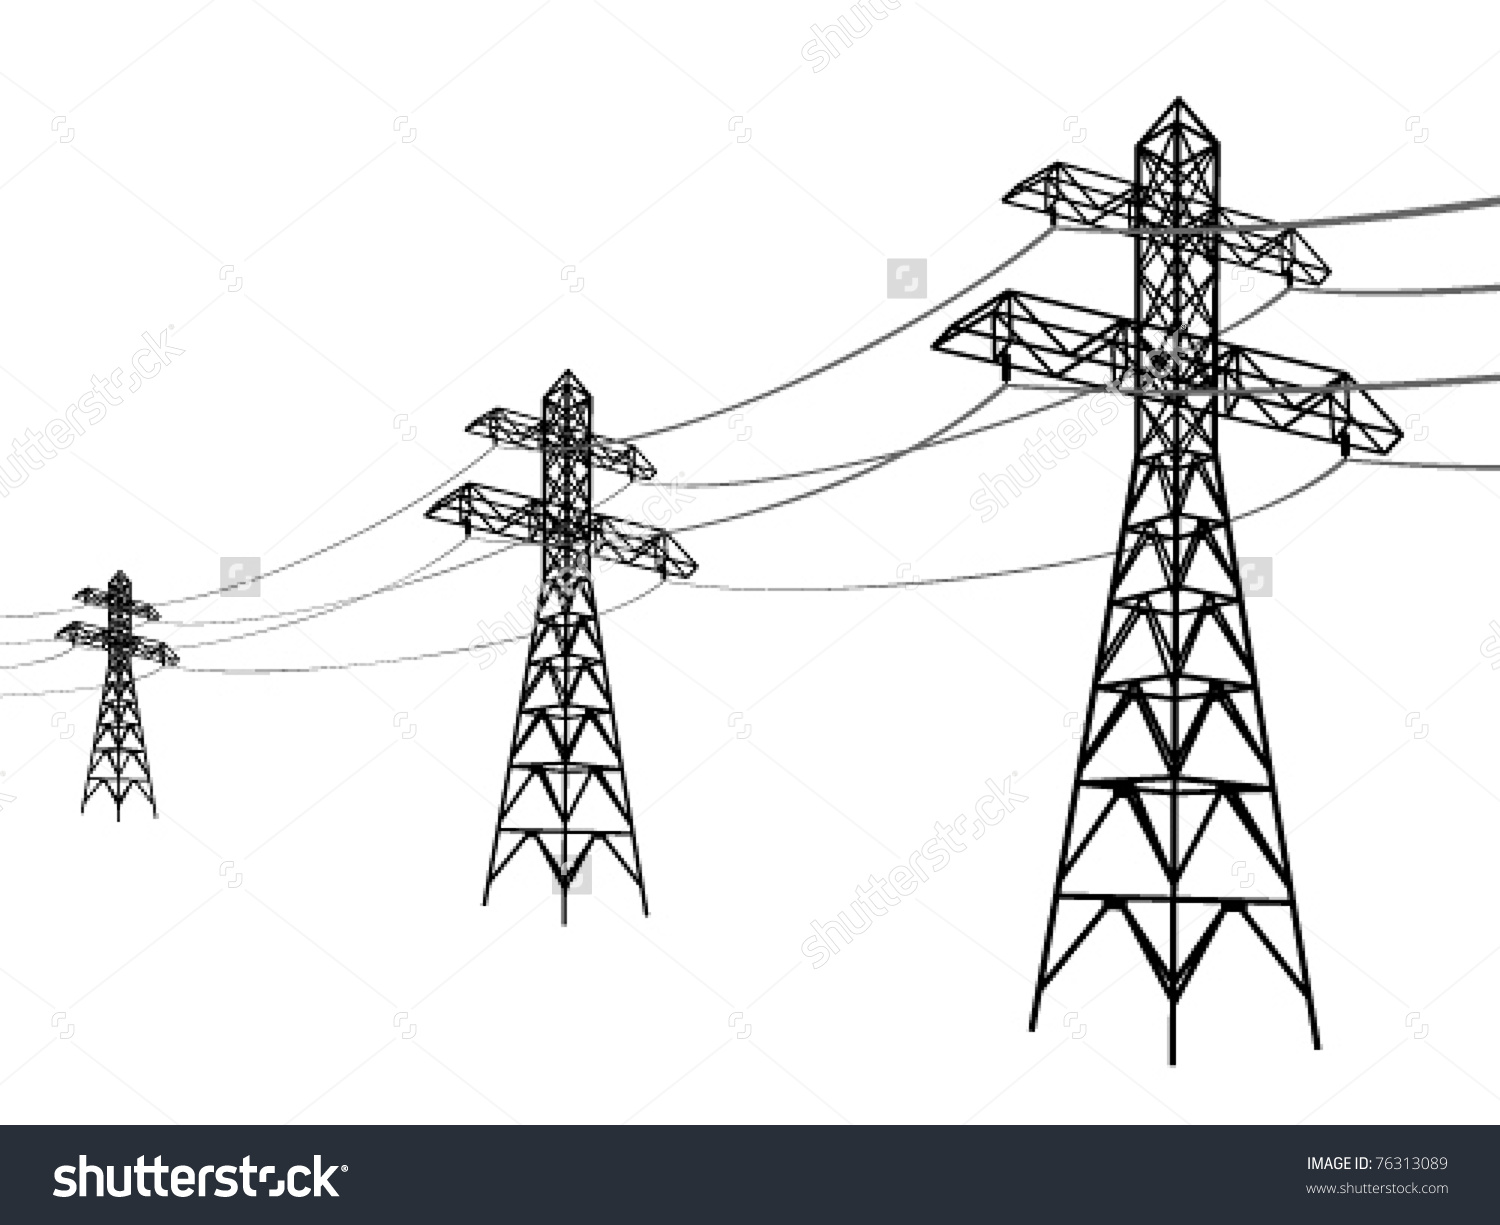 Electricity Lines Clipart